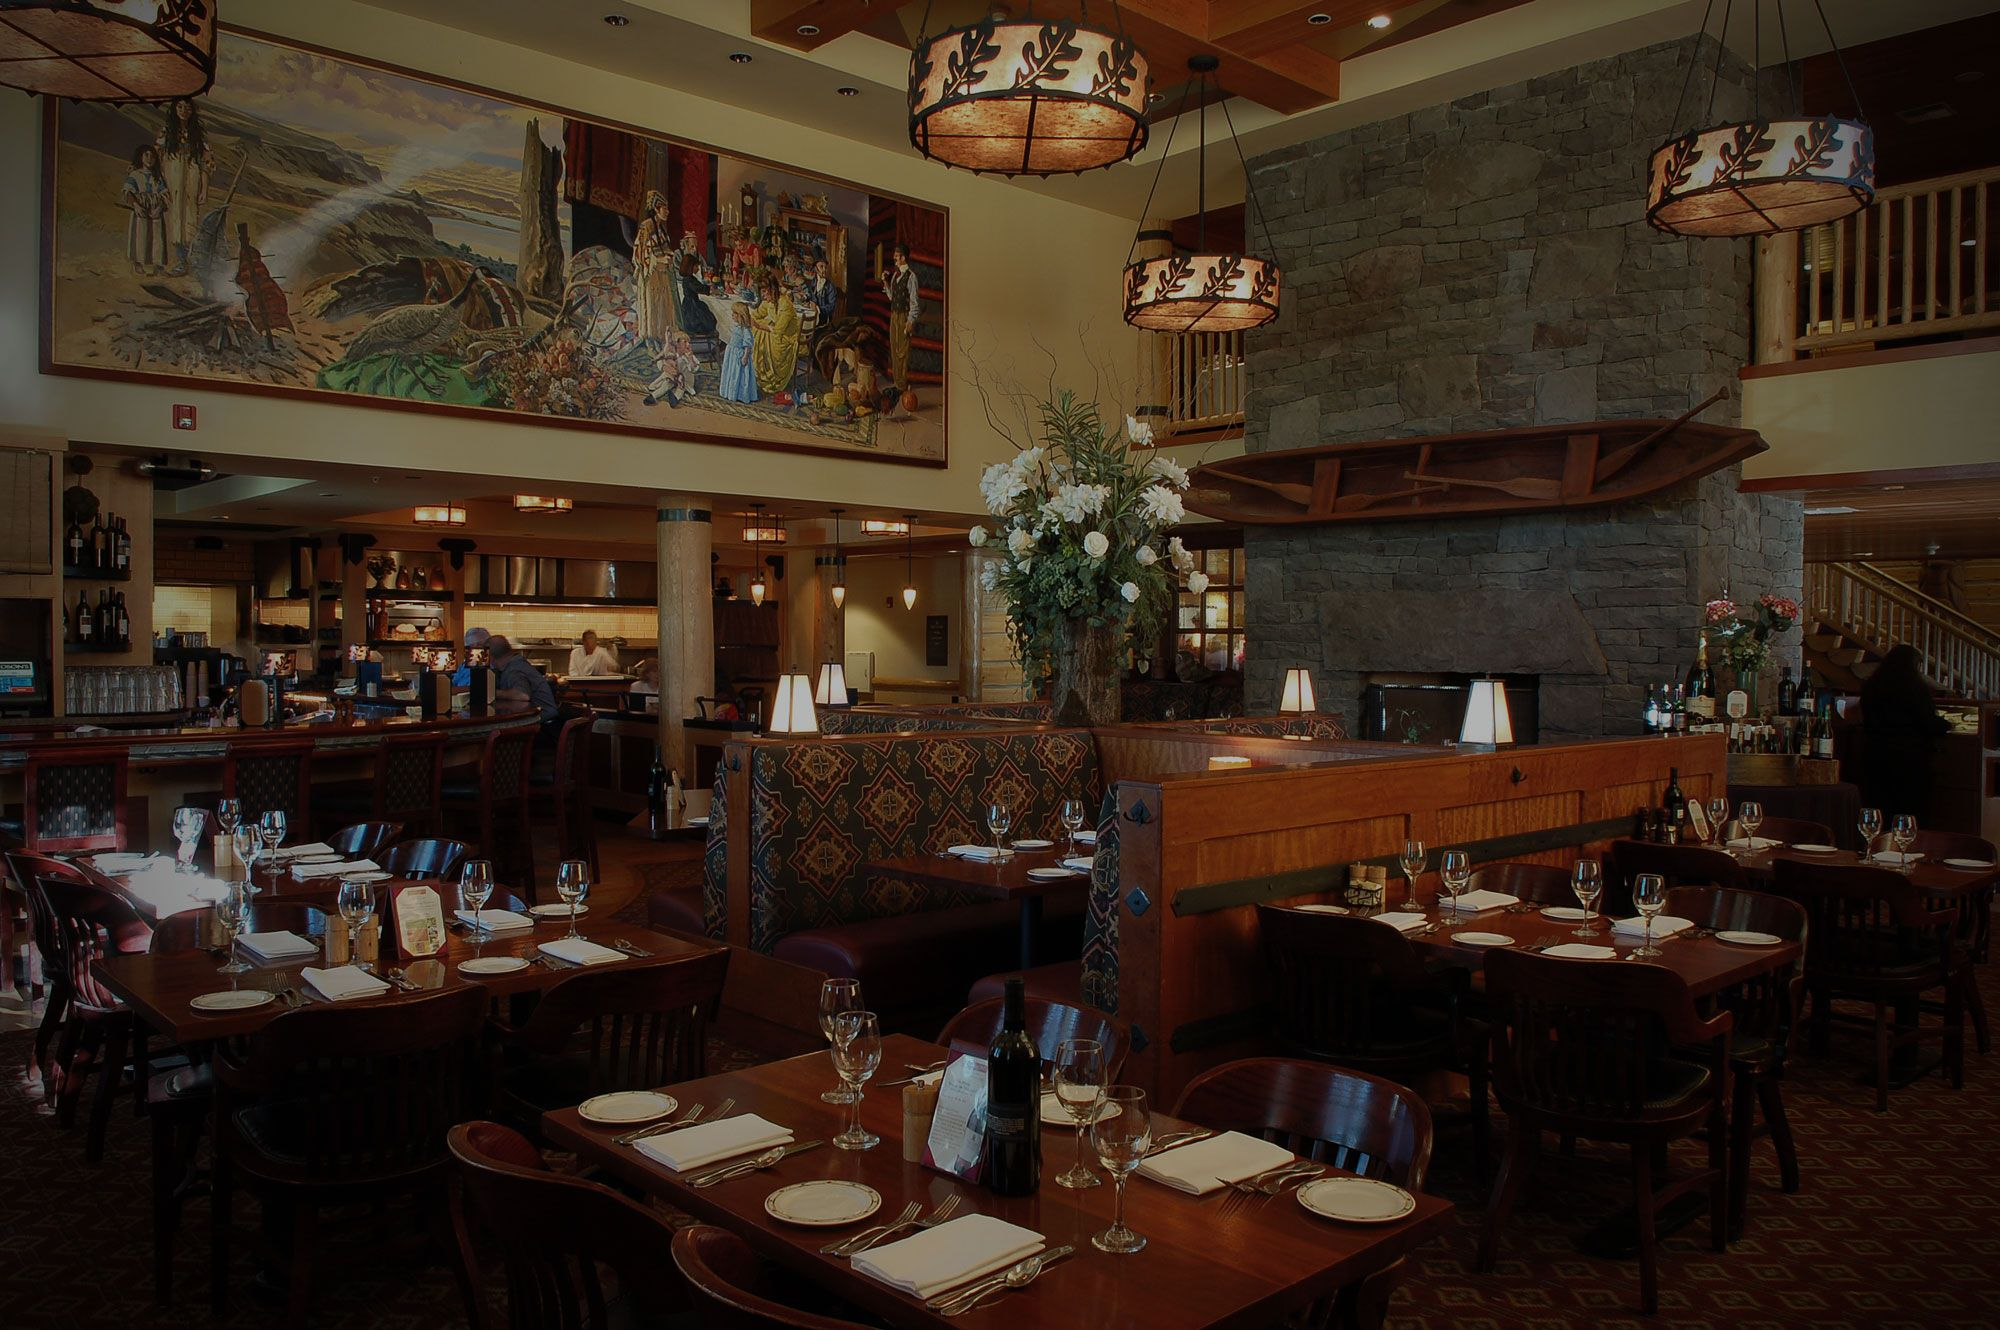 Hudsons bar and grill consistently delicious cozy and